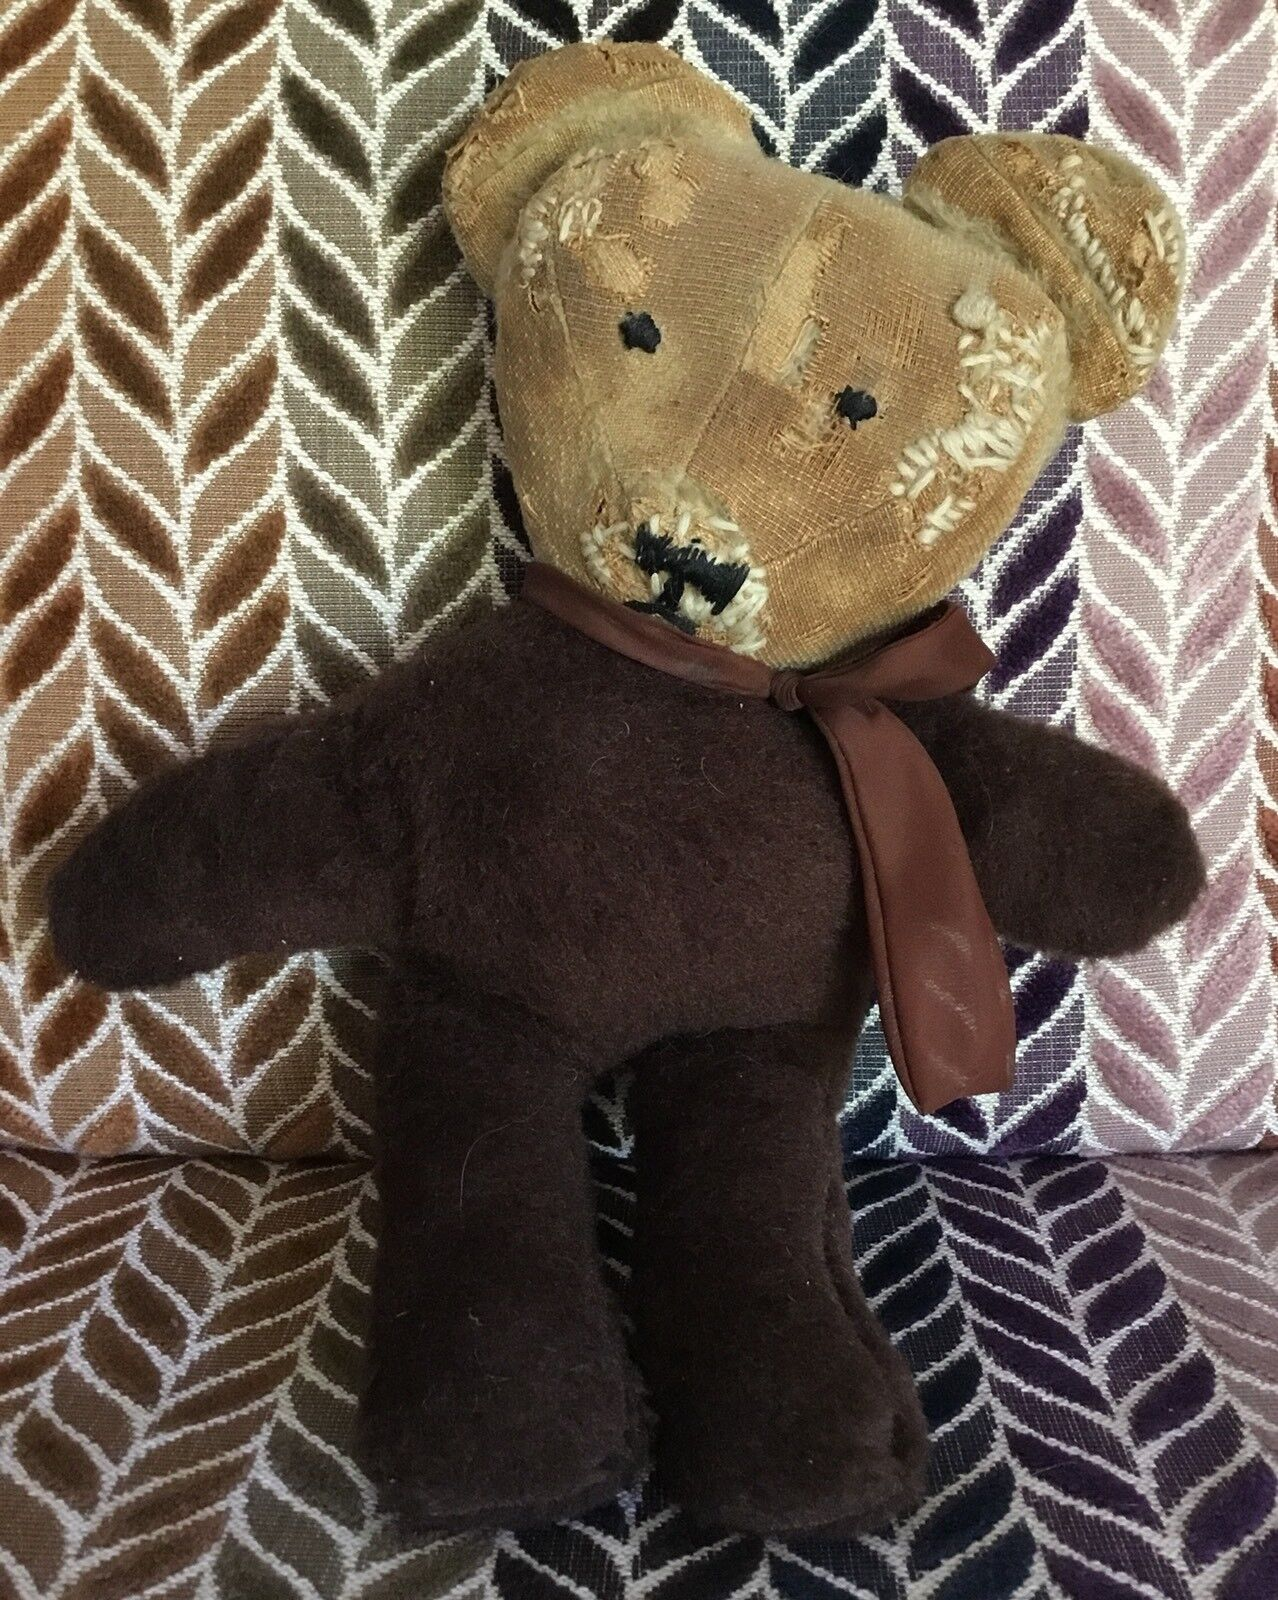 Old Vintage Well Loved Loved Loved Teddy Bear With Lots Of Mummy Stitches And Repairs c1797a